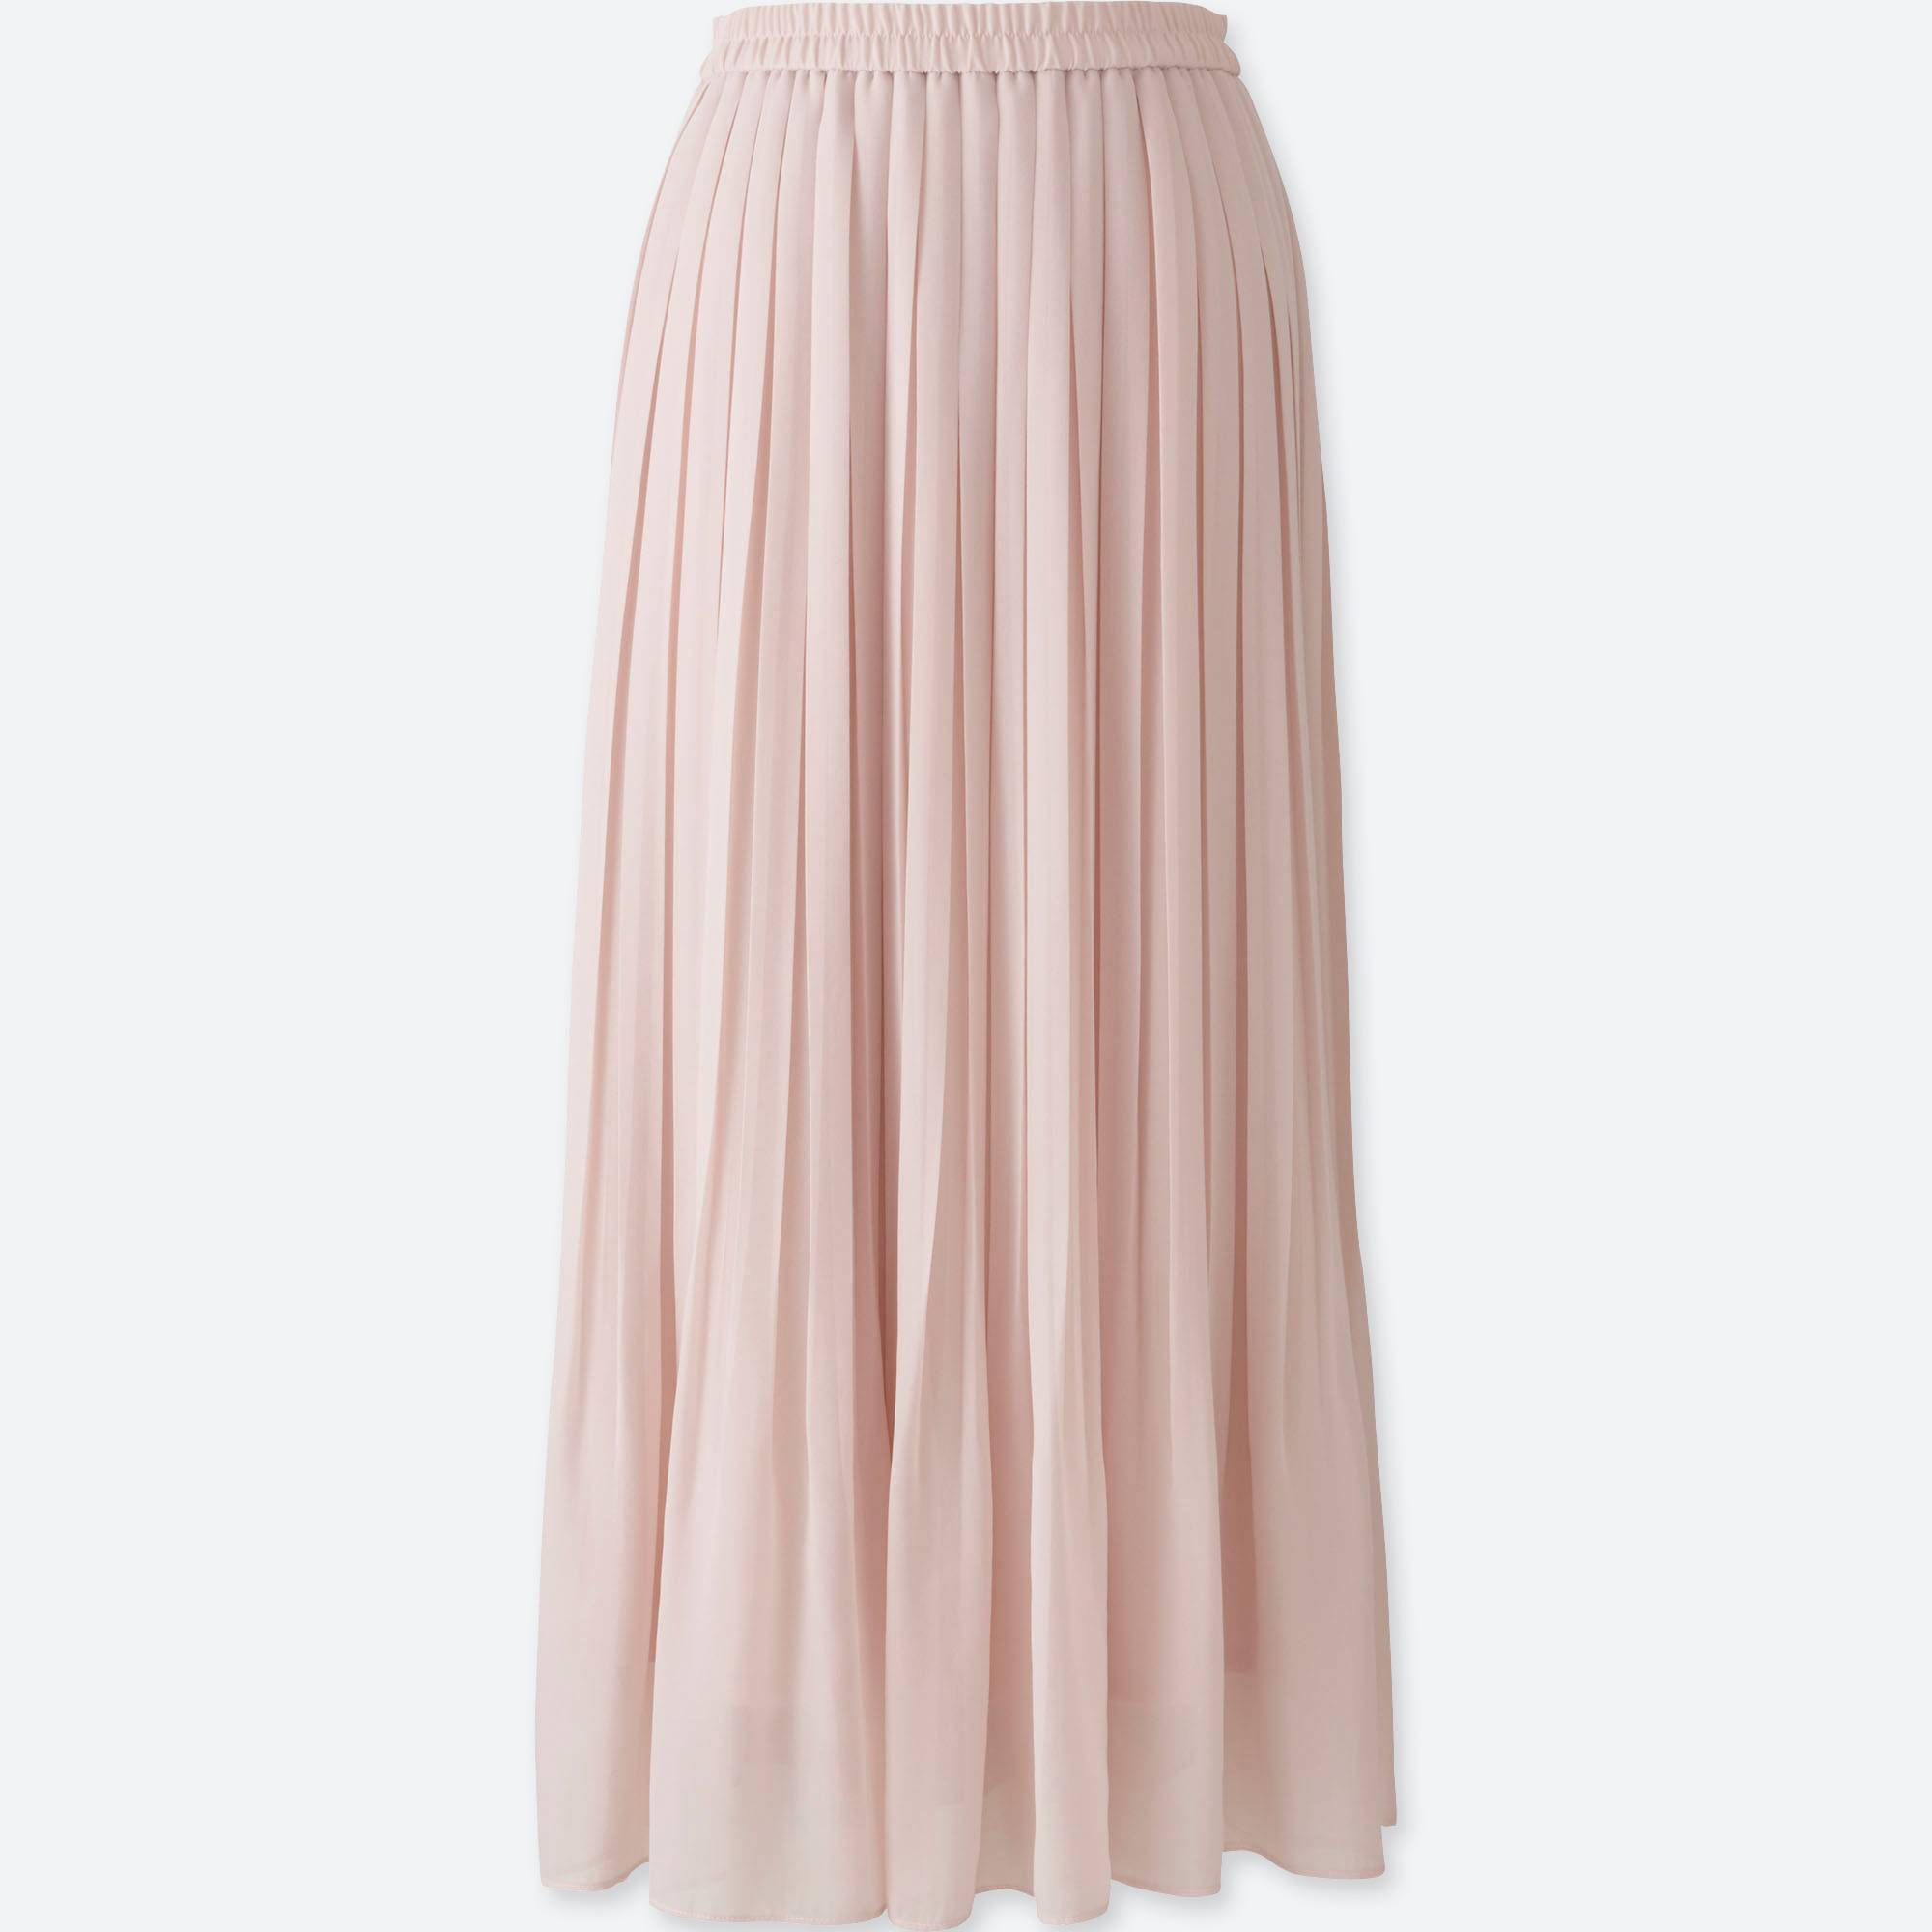 WOMEN HIGH WAIST CHIFFON PLEATED SKIRT | UNIQLO US